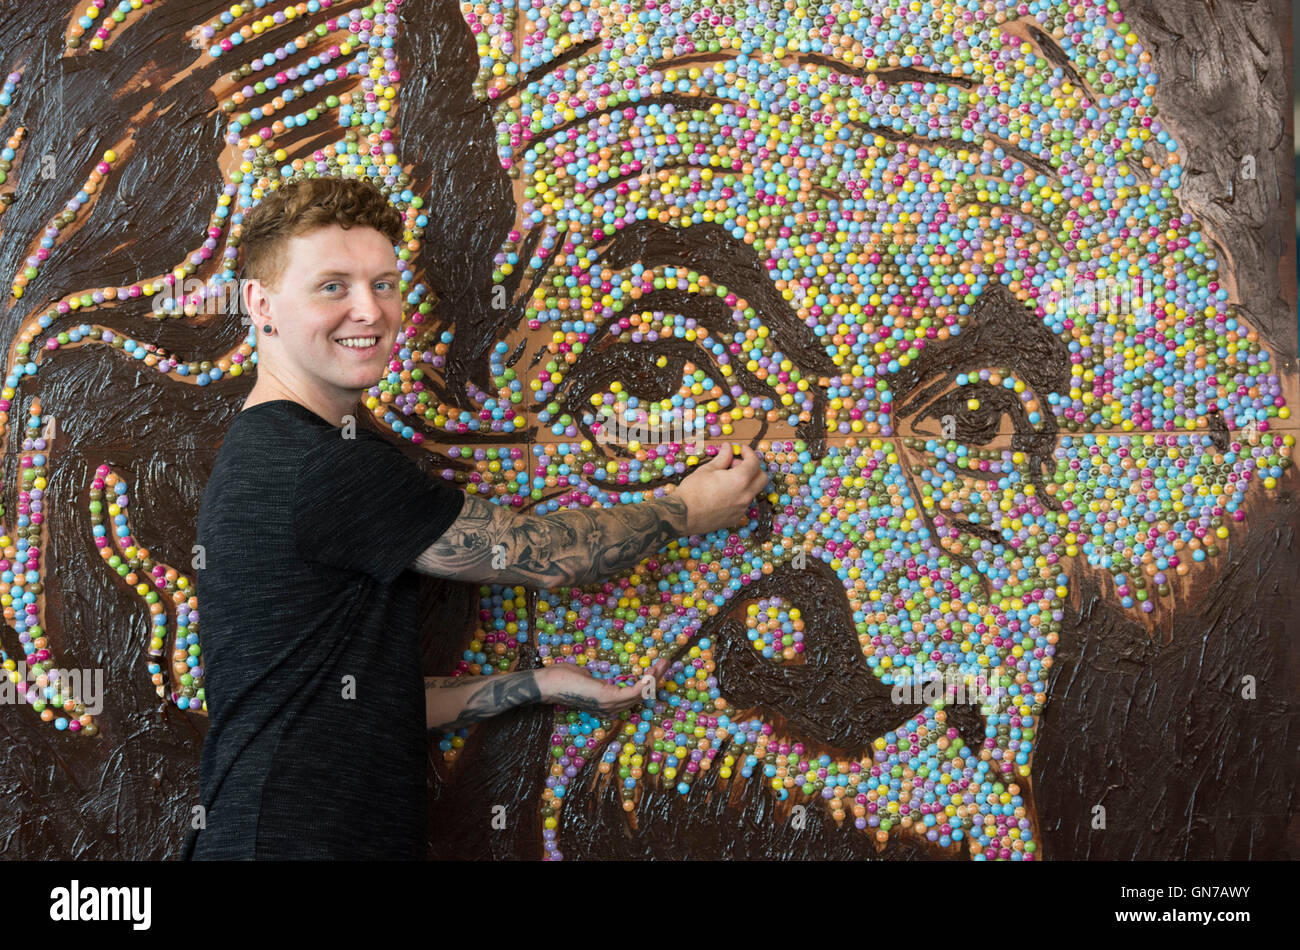 Cardiff artist Nathan Wyburn who created a portrait of Albert Einstein using Smarties. - Stock Image